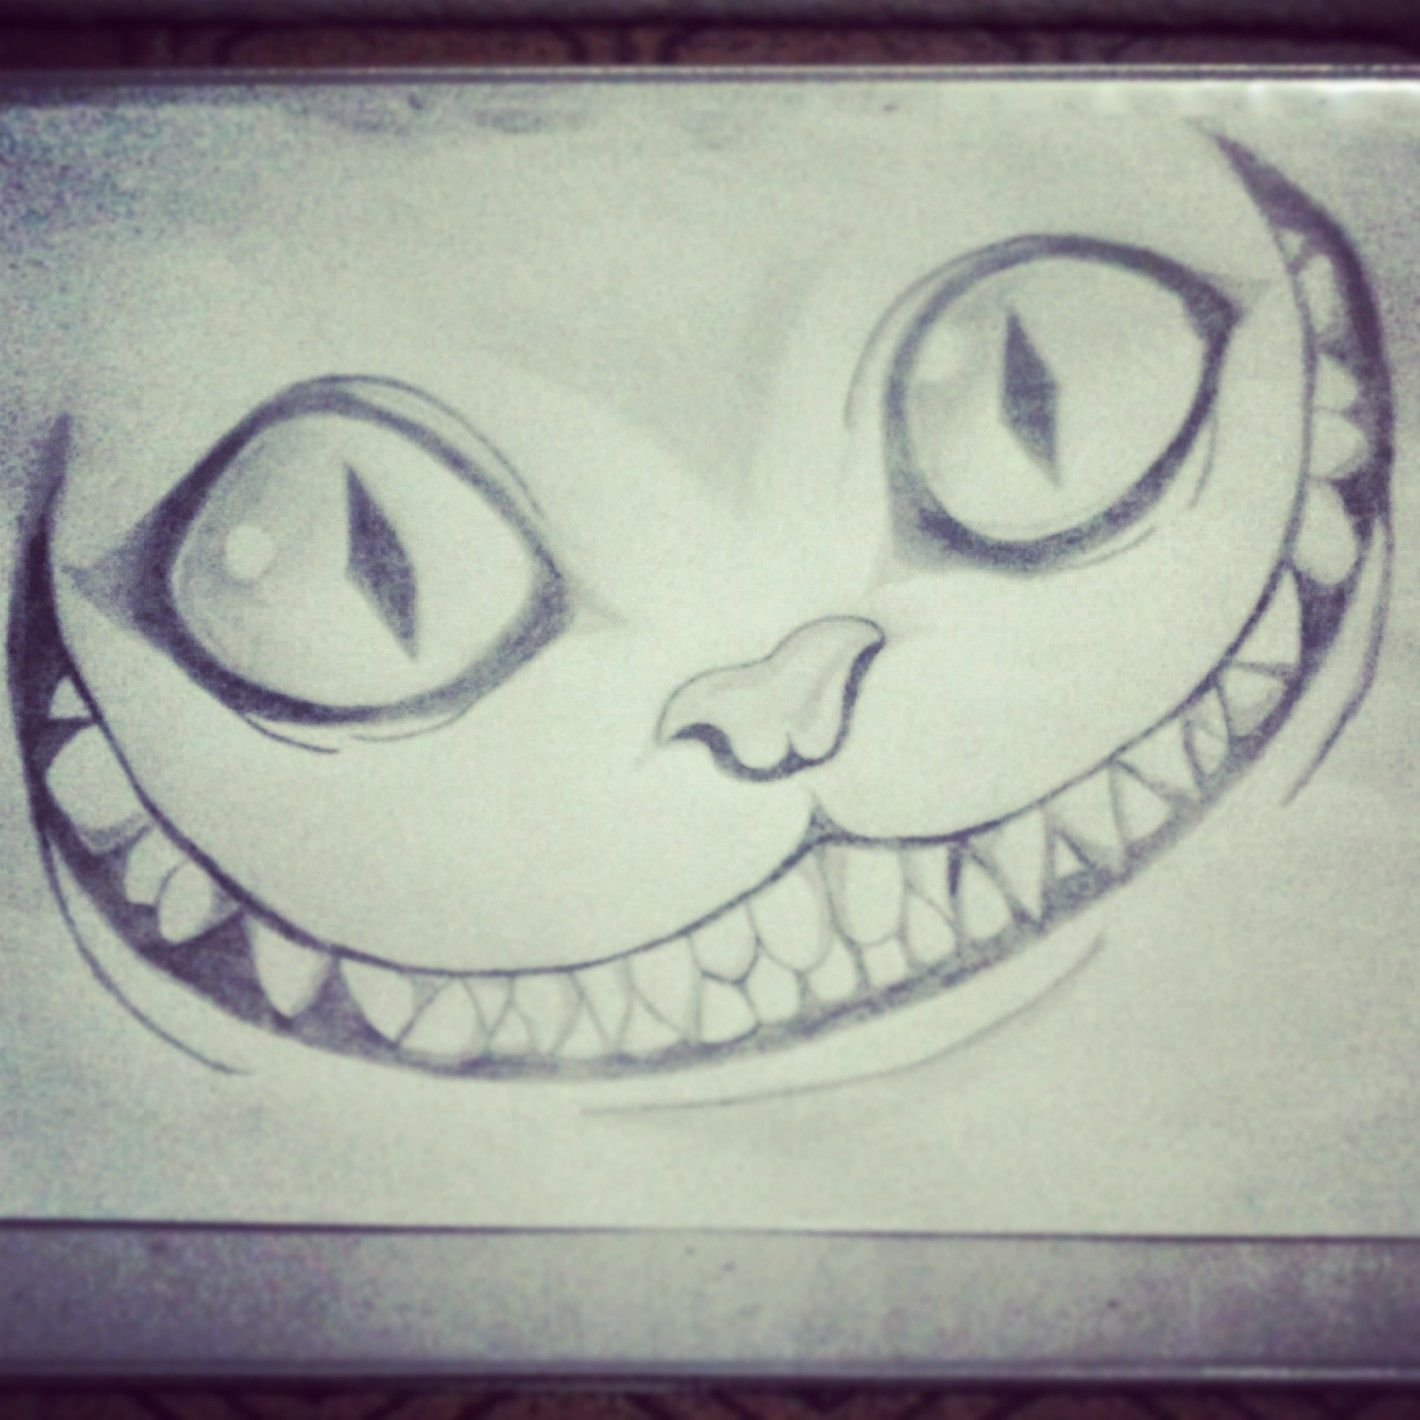 Cheshire Cat - Alice in Wonderland - Tim Burton | ideas | Pinterest ...